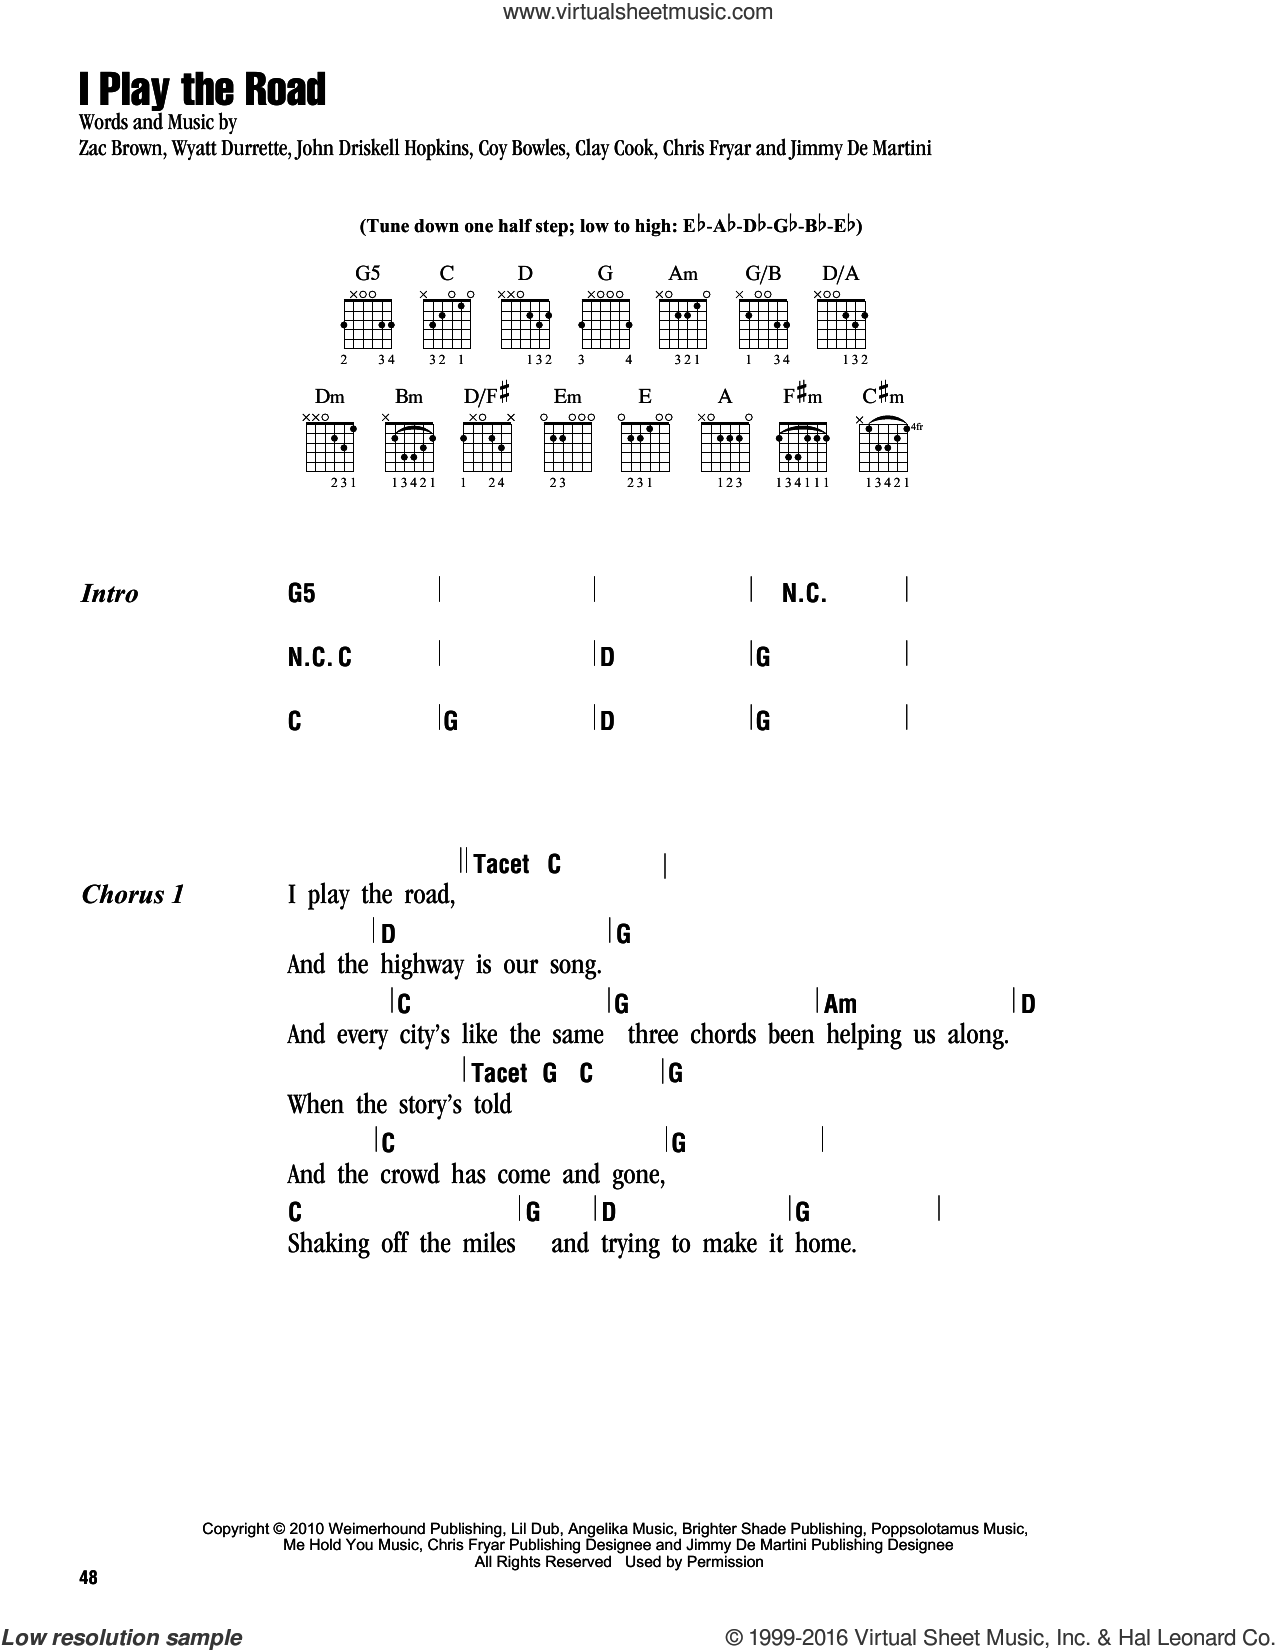 I Play The Road sheet music for guitar (chords) by Zac Brown